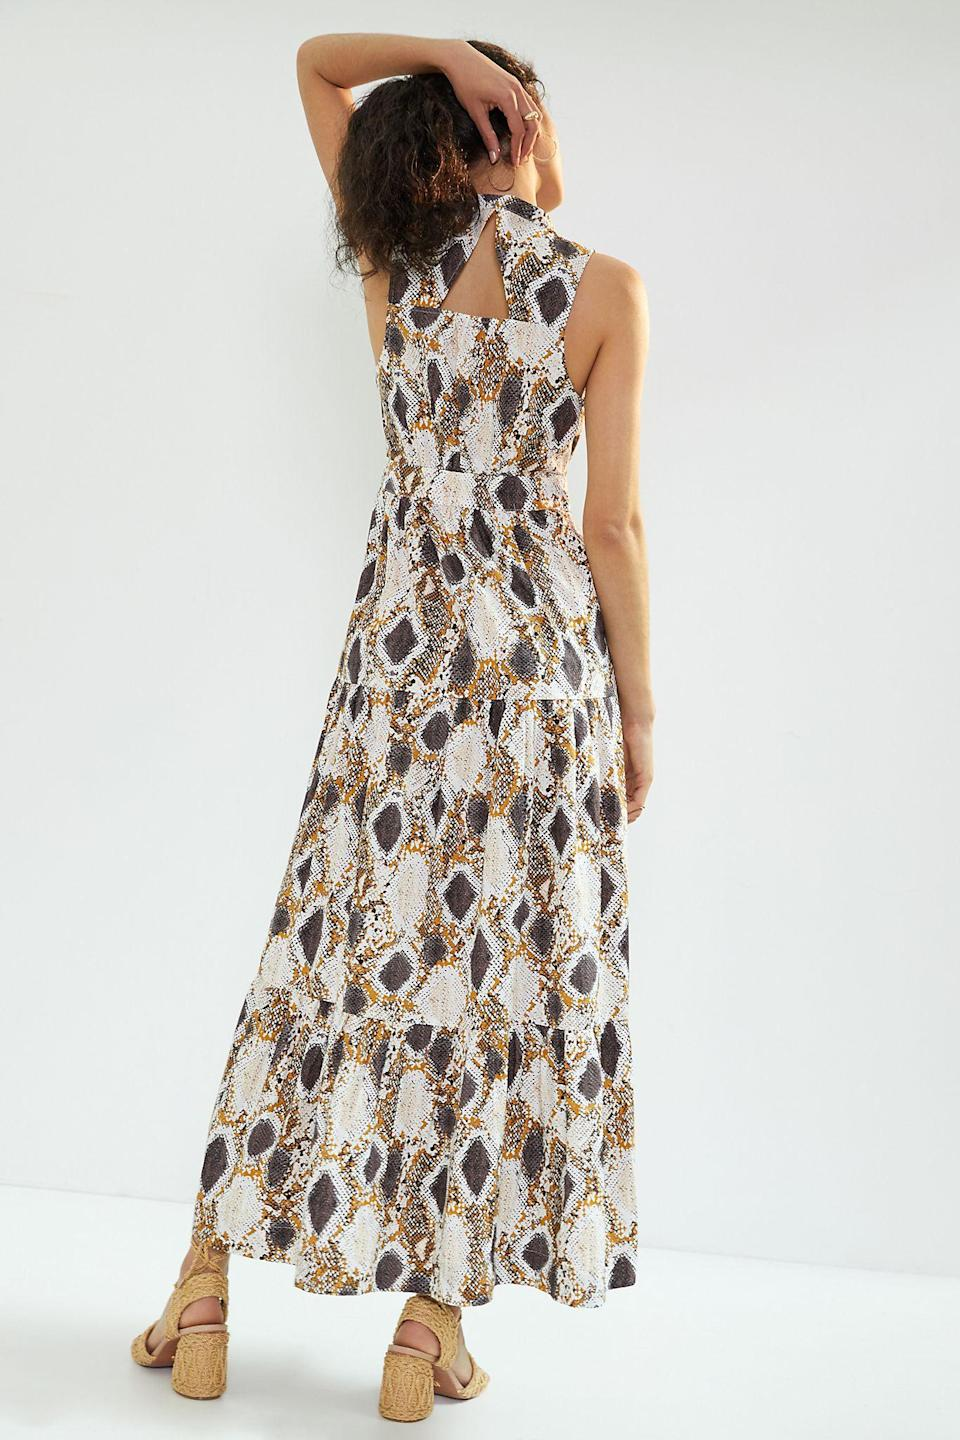 """<h2>Maeve Snake-Printed Maxi Dress</h2><br><strong>Sizes Available: 16W-26W</strong><br><br><em>Shop <strong><a href=""""http://anthropologie.com/shop/maeve-puff-sleeved-mini-dress?color=035&type=PLUS&quantity=1"""" rel=""""nofollow noopener"""" target=""""_blank"""" data-ylk=""""slk:Anthropologie"""" class=""""link rapid-noclick-resp"""">Anthropologie</a></strong></em><br><br><strong>Maeve</strong> Maeve Snake-Printed Maxi Dress, $, available at <a href=""""https://go.skimresources.com/?id=30283X879131&url=https%3A%2F%2Fwww.anthropologie.com%2Fshop%2Fmaeve-snake-printed-maxi-dress%3Fcategory%3Dplus-size-dresses%26color%3D015%26type%3DPLUS%26viewcode%3Db%26quantity%3D1"""" rel=""""nofollow noopener"""" target=""""_blank"""" data-ylk=""""slk:Anthropologie"""" class=""""link rapid-noclick-resp"""">Anthropologie</a>"""